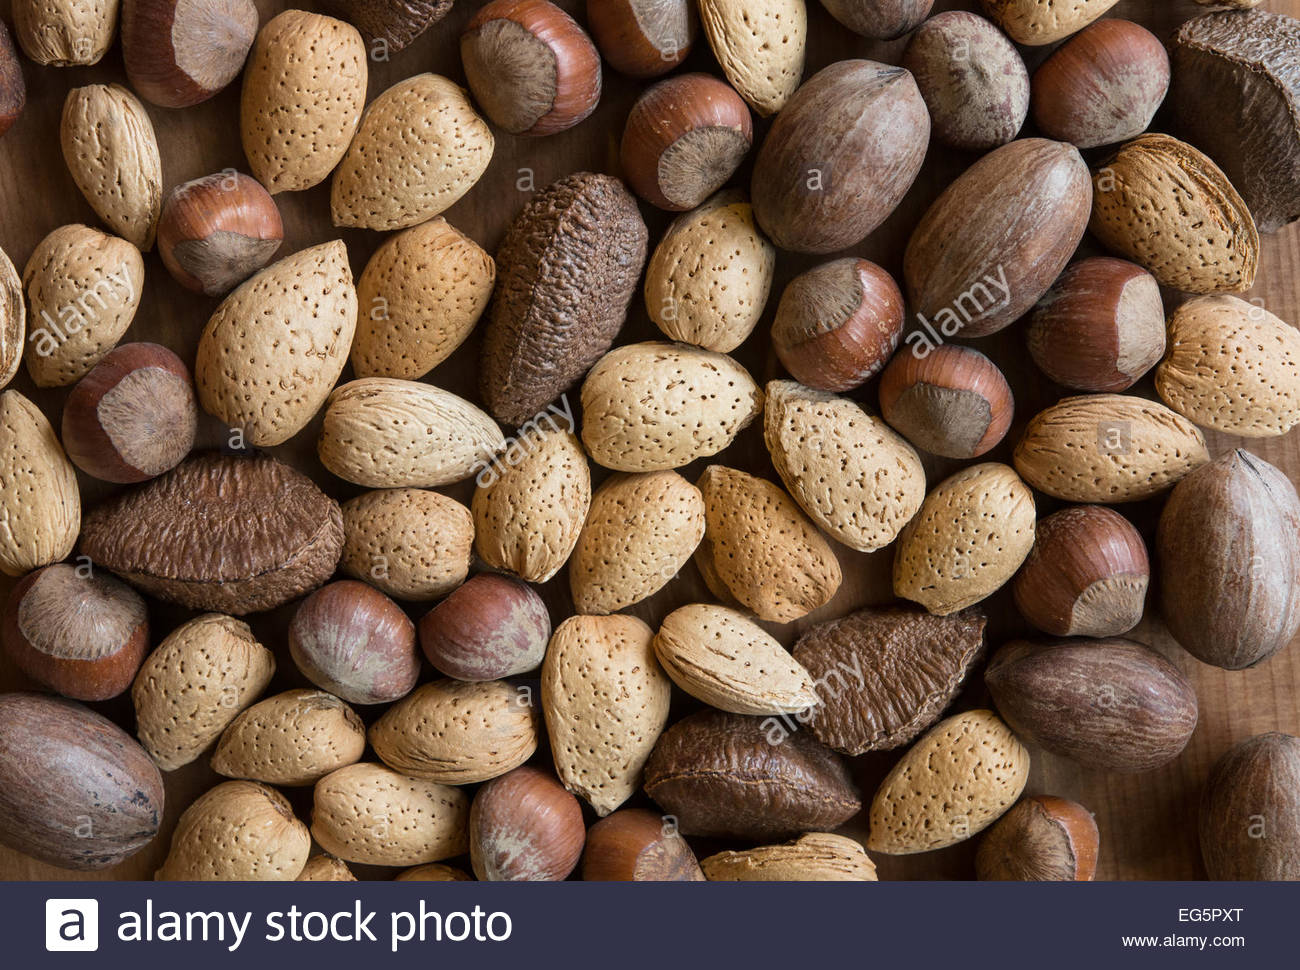 Mixed nuts in shells on wooden surface - Stock Image